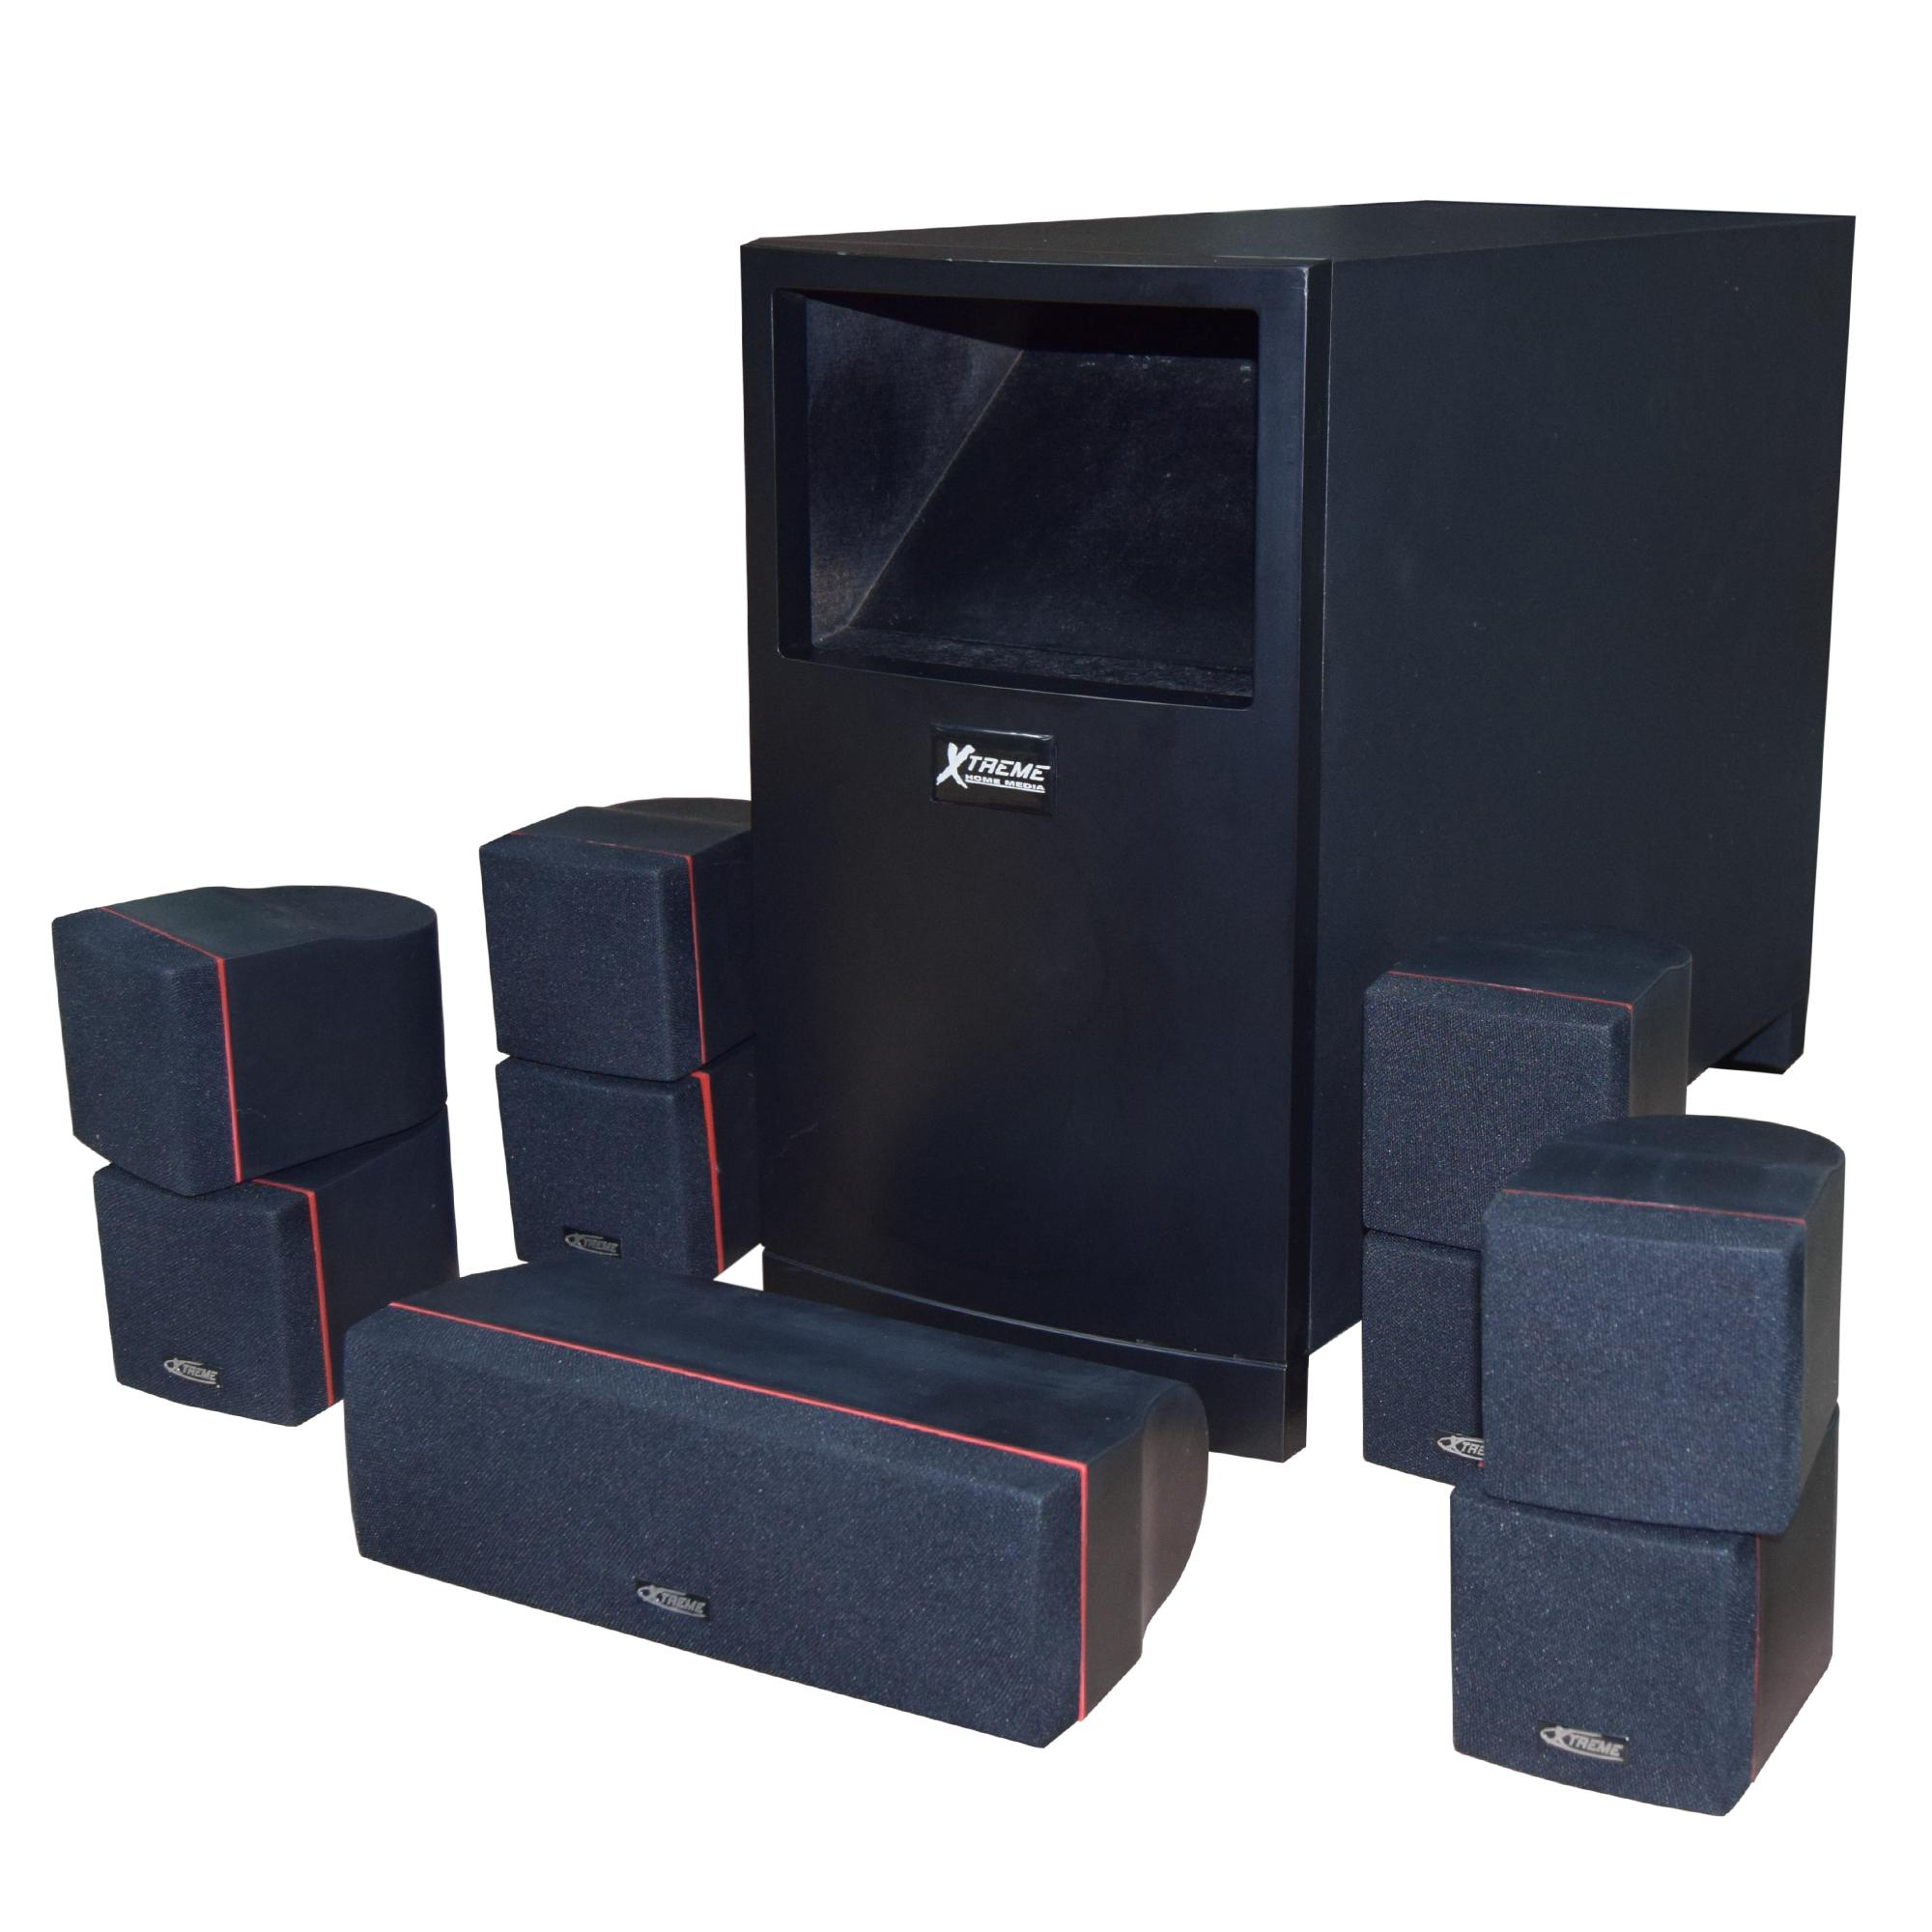 hight resolution of xm 100 home theater speaker system 400watts rms